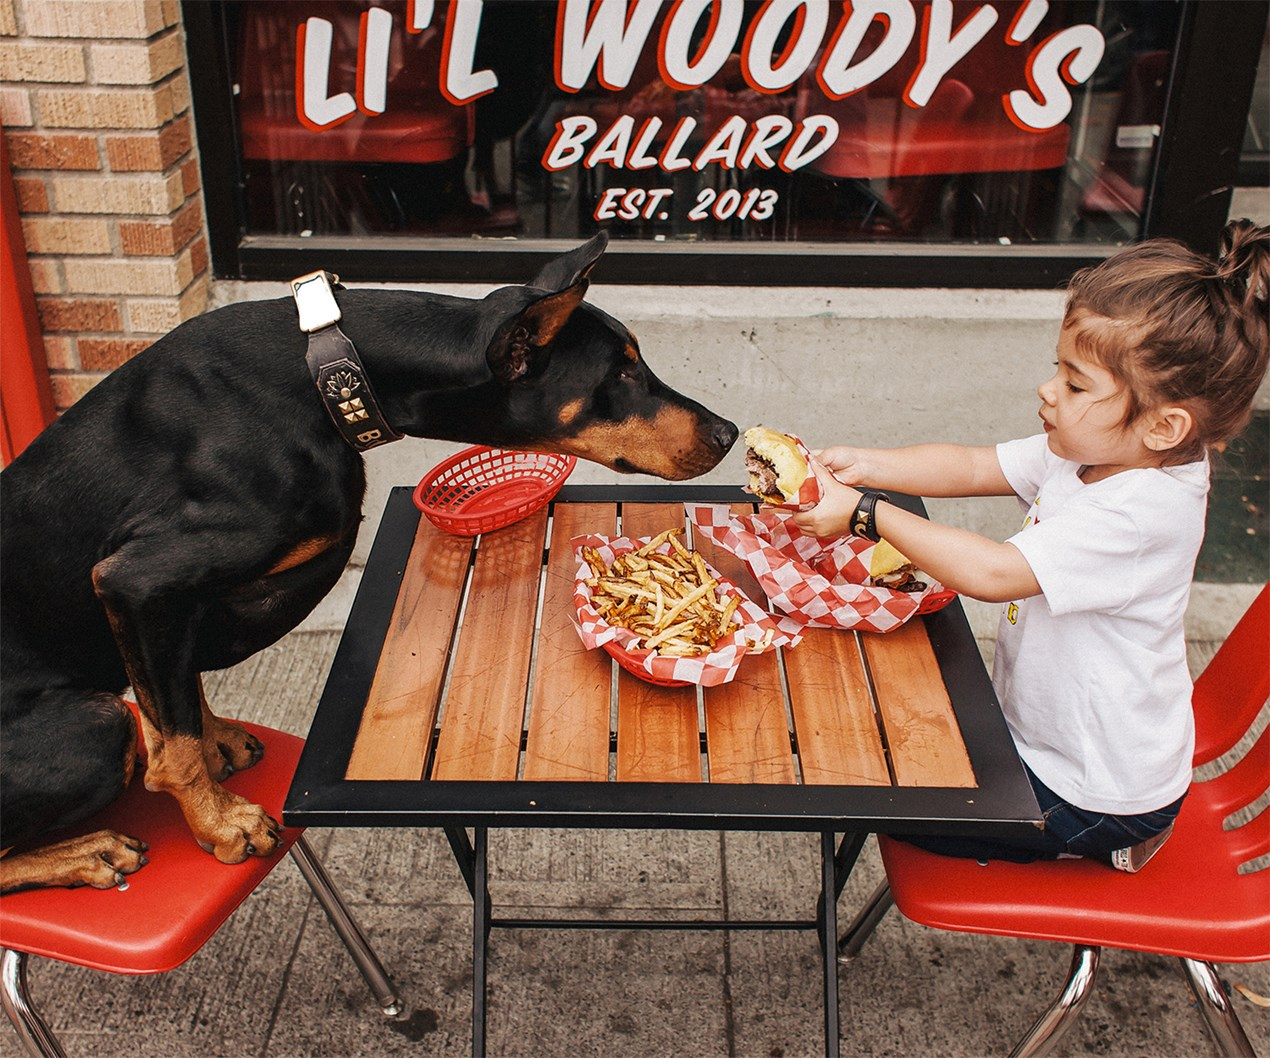 Cutie and the Beast: Adorable best friends go viral